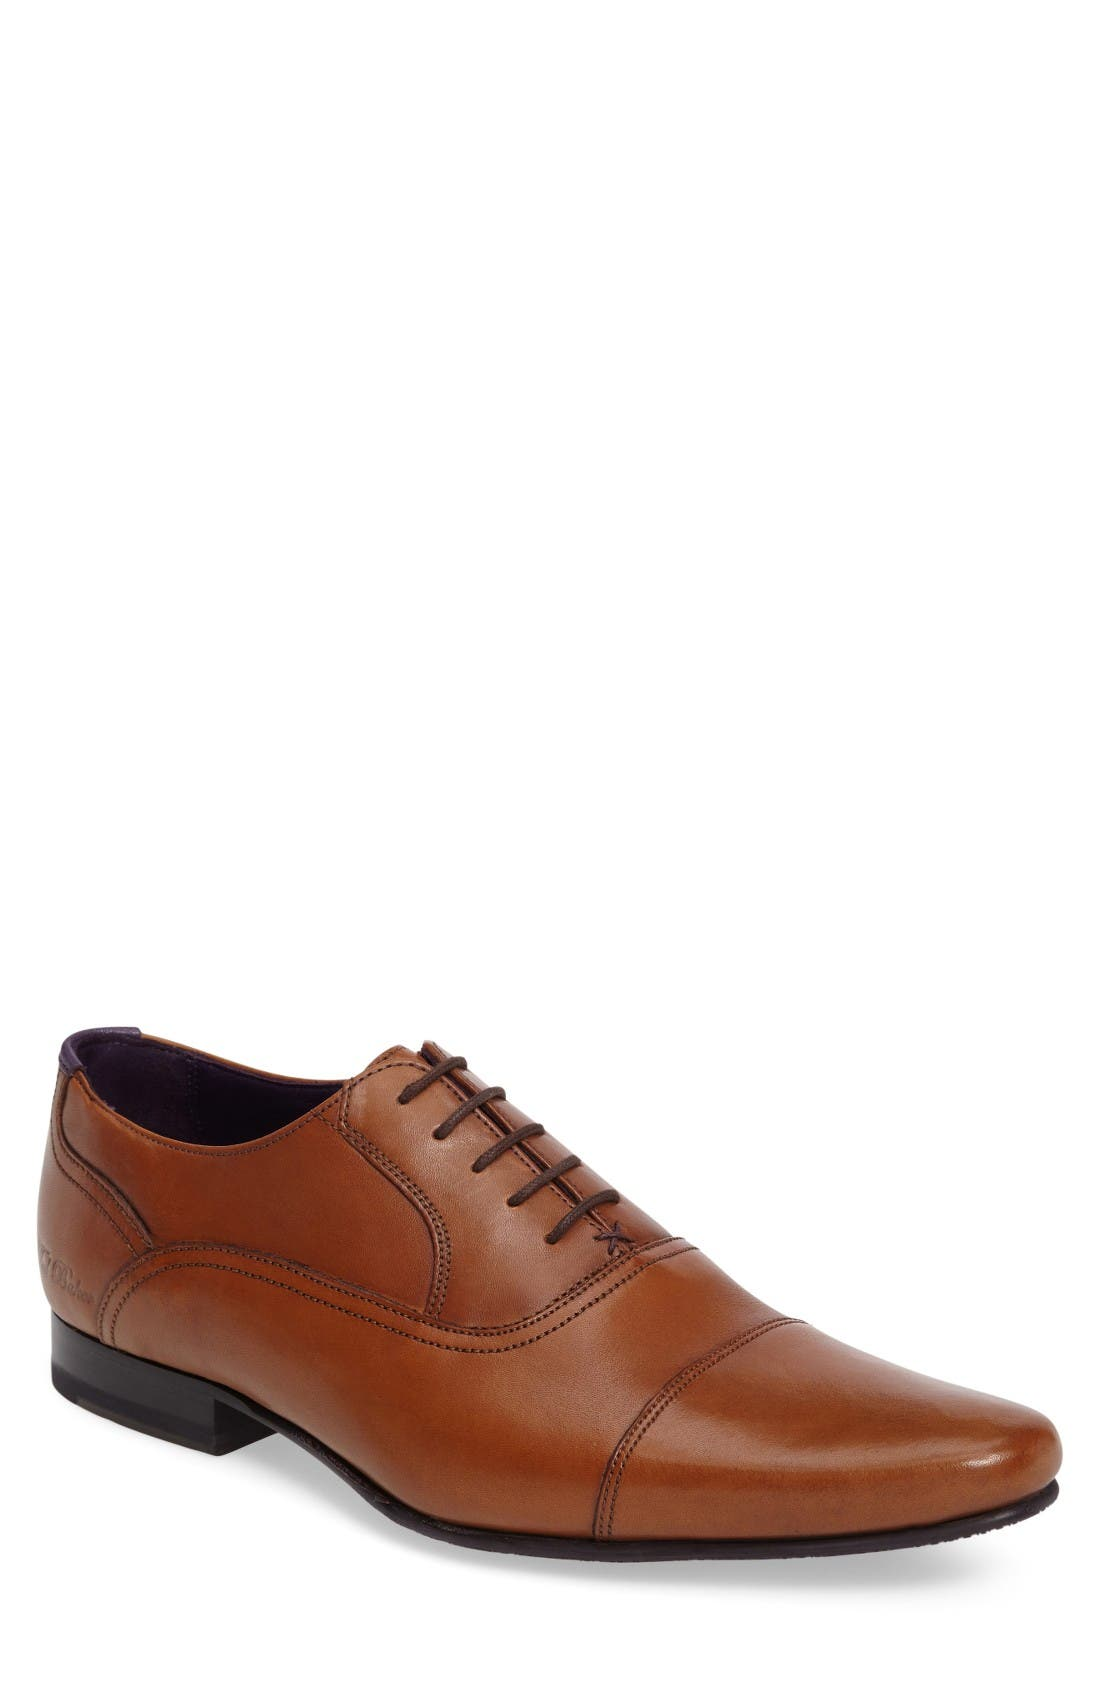 Ted Baker London Rogrr 3 Cap Toe Oxford (Men)